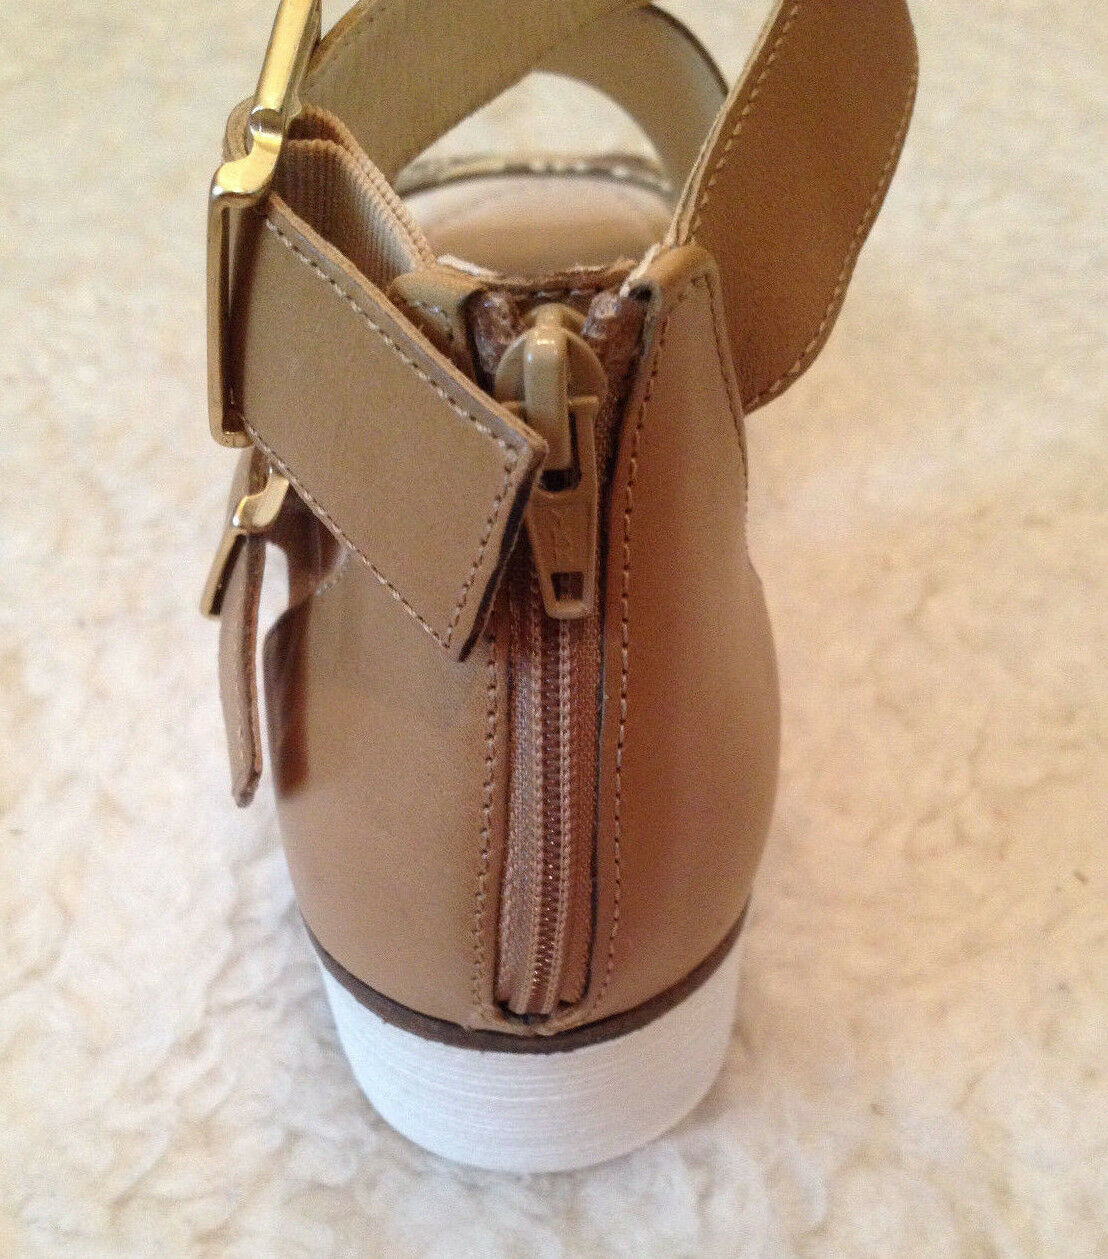 NIB 189 Gabor Sporty S Buckle NATURAL SNAKE BACK Damenschuhe ZIP Sandales 44572 Damenschuhe BACK 8 M cf3519